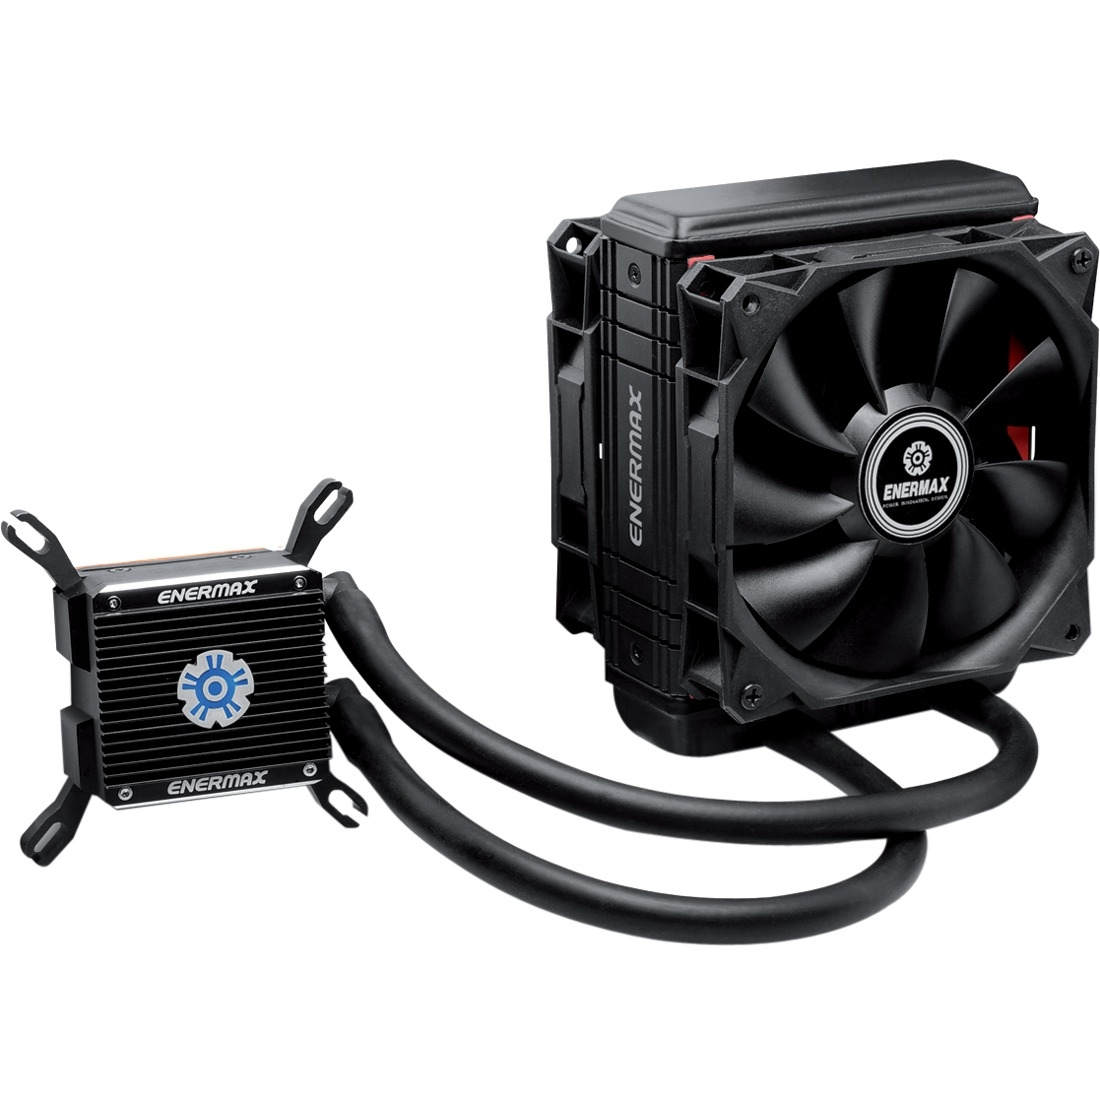 "Enermax Liqtech 120x Elc-lt120x-hp Cooling Fan/radiator - 2 X 4.72"" - 2500 Rpm - Twister Bearing - Socket T Lga-775, Socket H3 Lga-1150, Socket H2 Lga-1155, Socket H Lga-1156, Socket B (elc-lt120x-hp)"